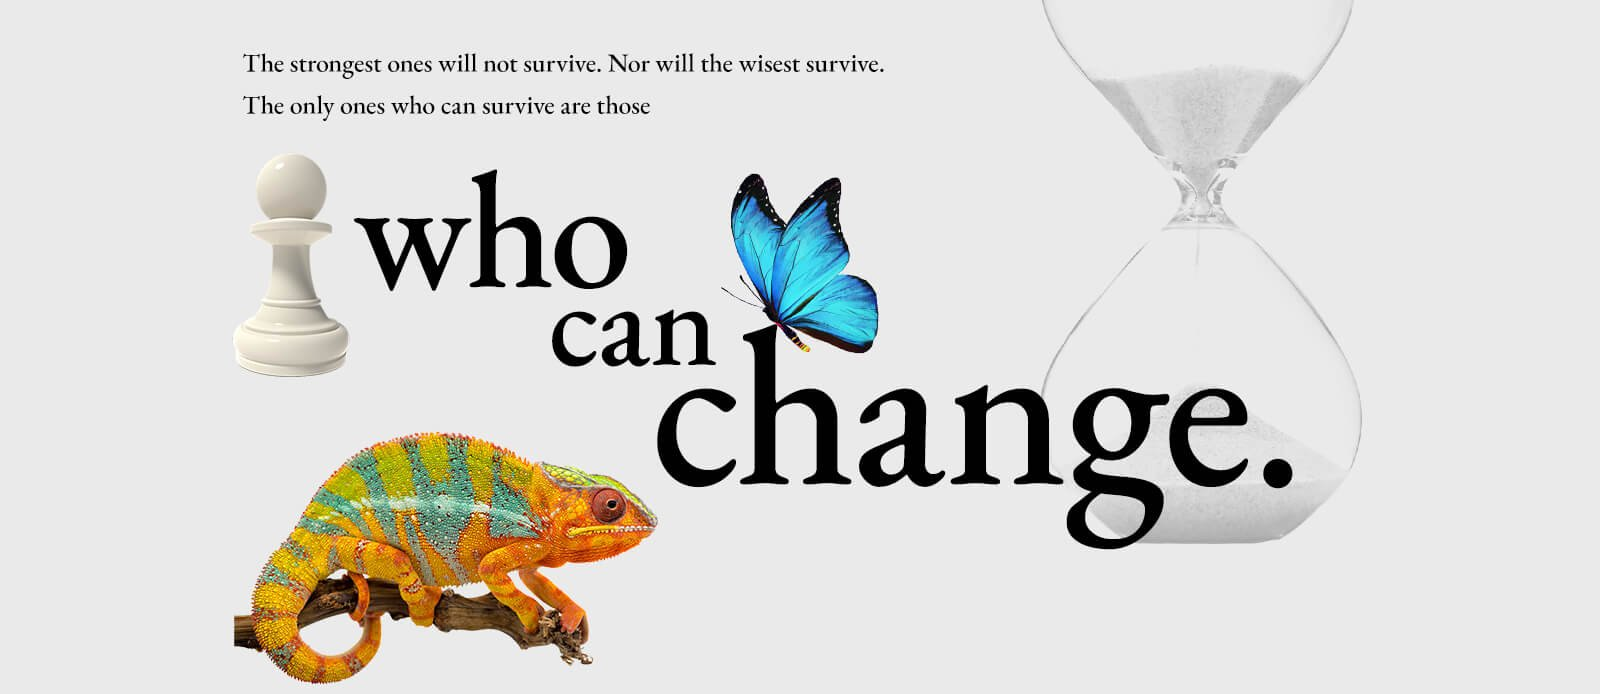 The strongest ones will not survive. Nor will the wisest survive.The only ones who can survive are those who can change.